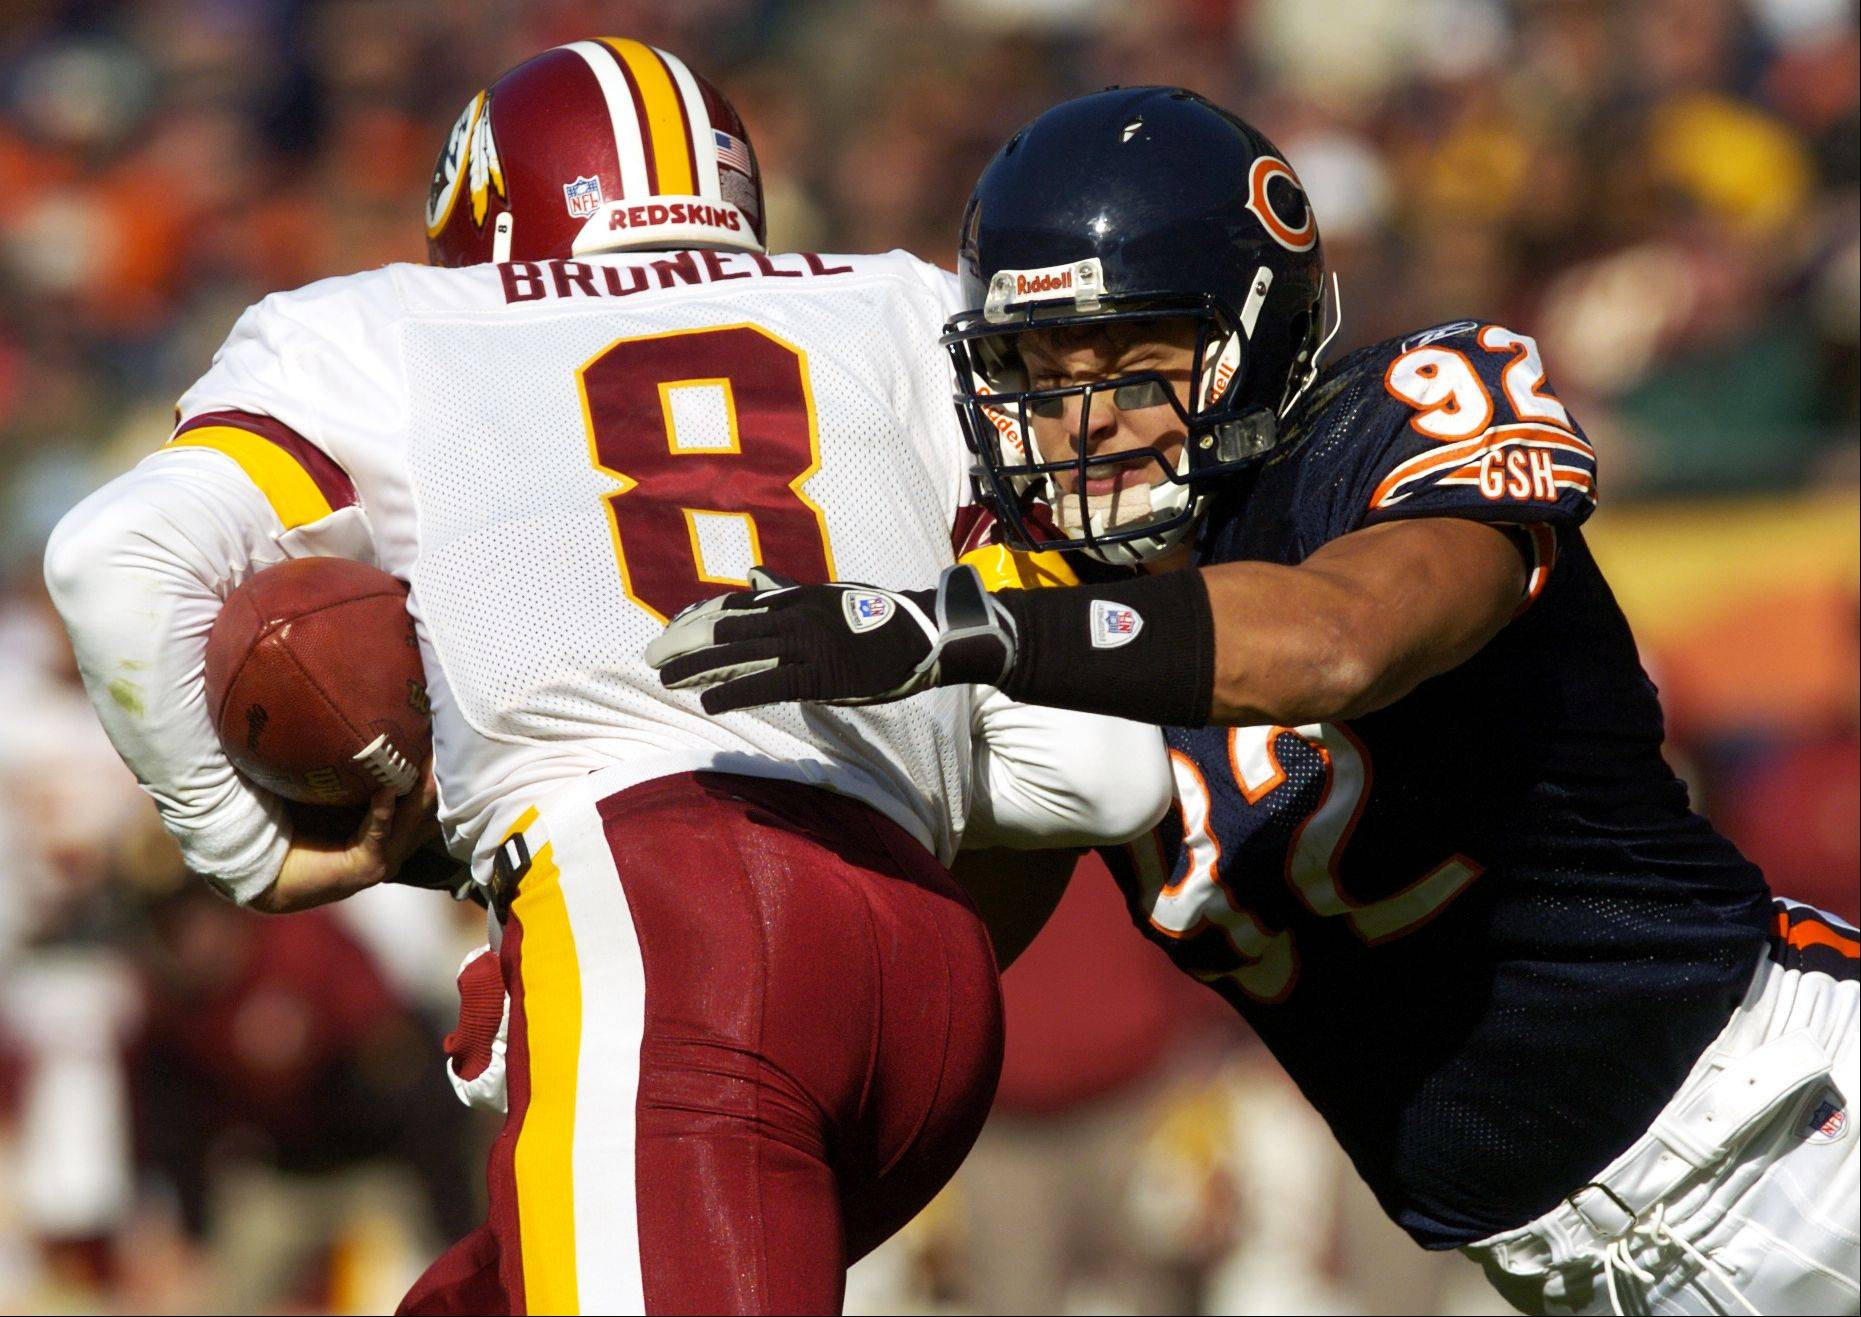 Former Bear Hillenmeyer supports limiting kids' tackling in practice